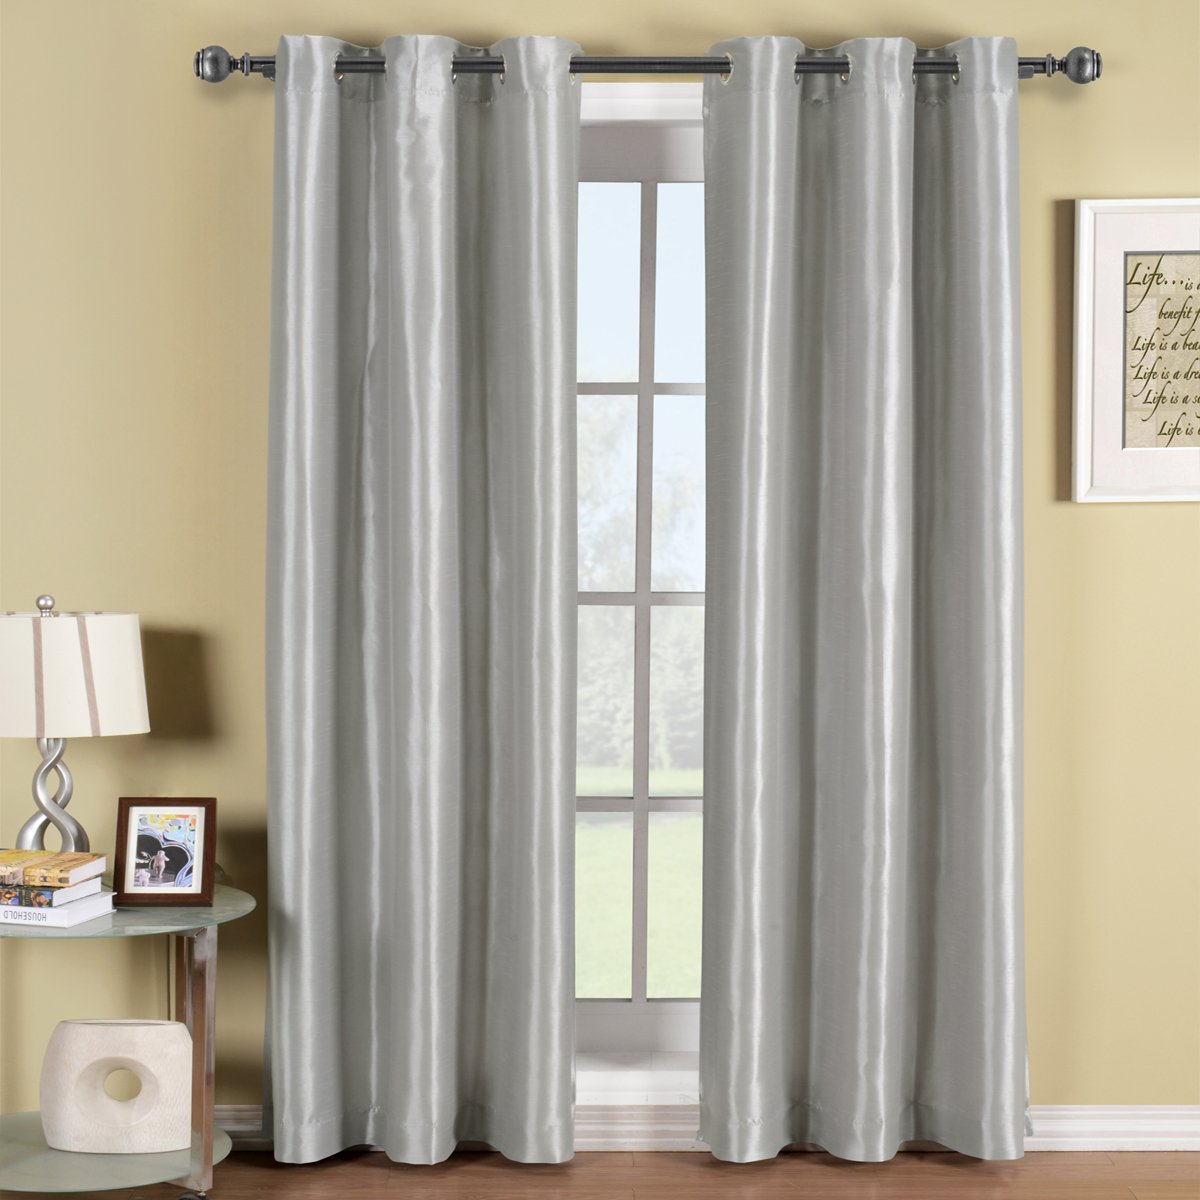 Amazon.com: Soho Gray-Silver Grommet Blackout Window Curtain Drape ...